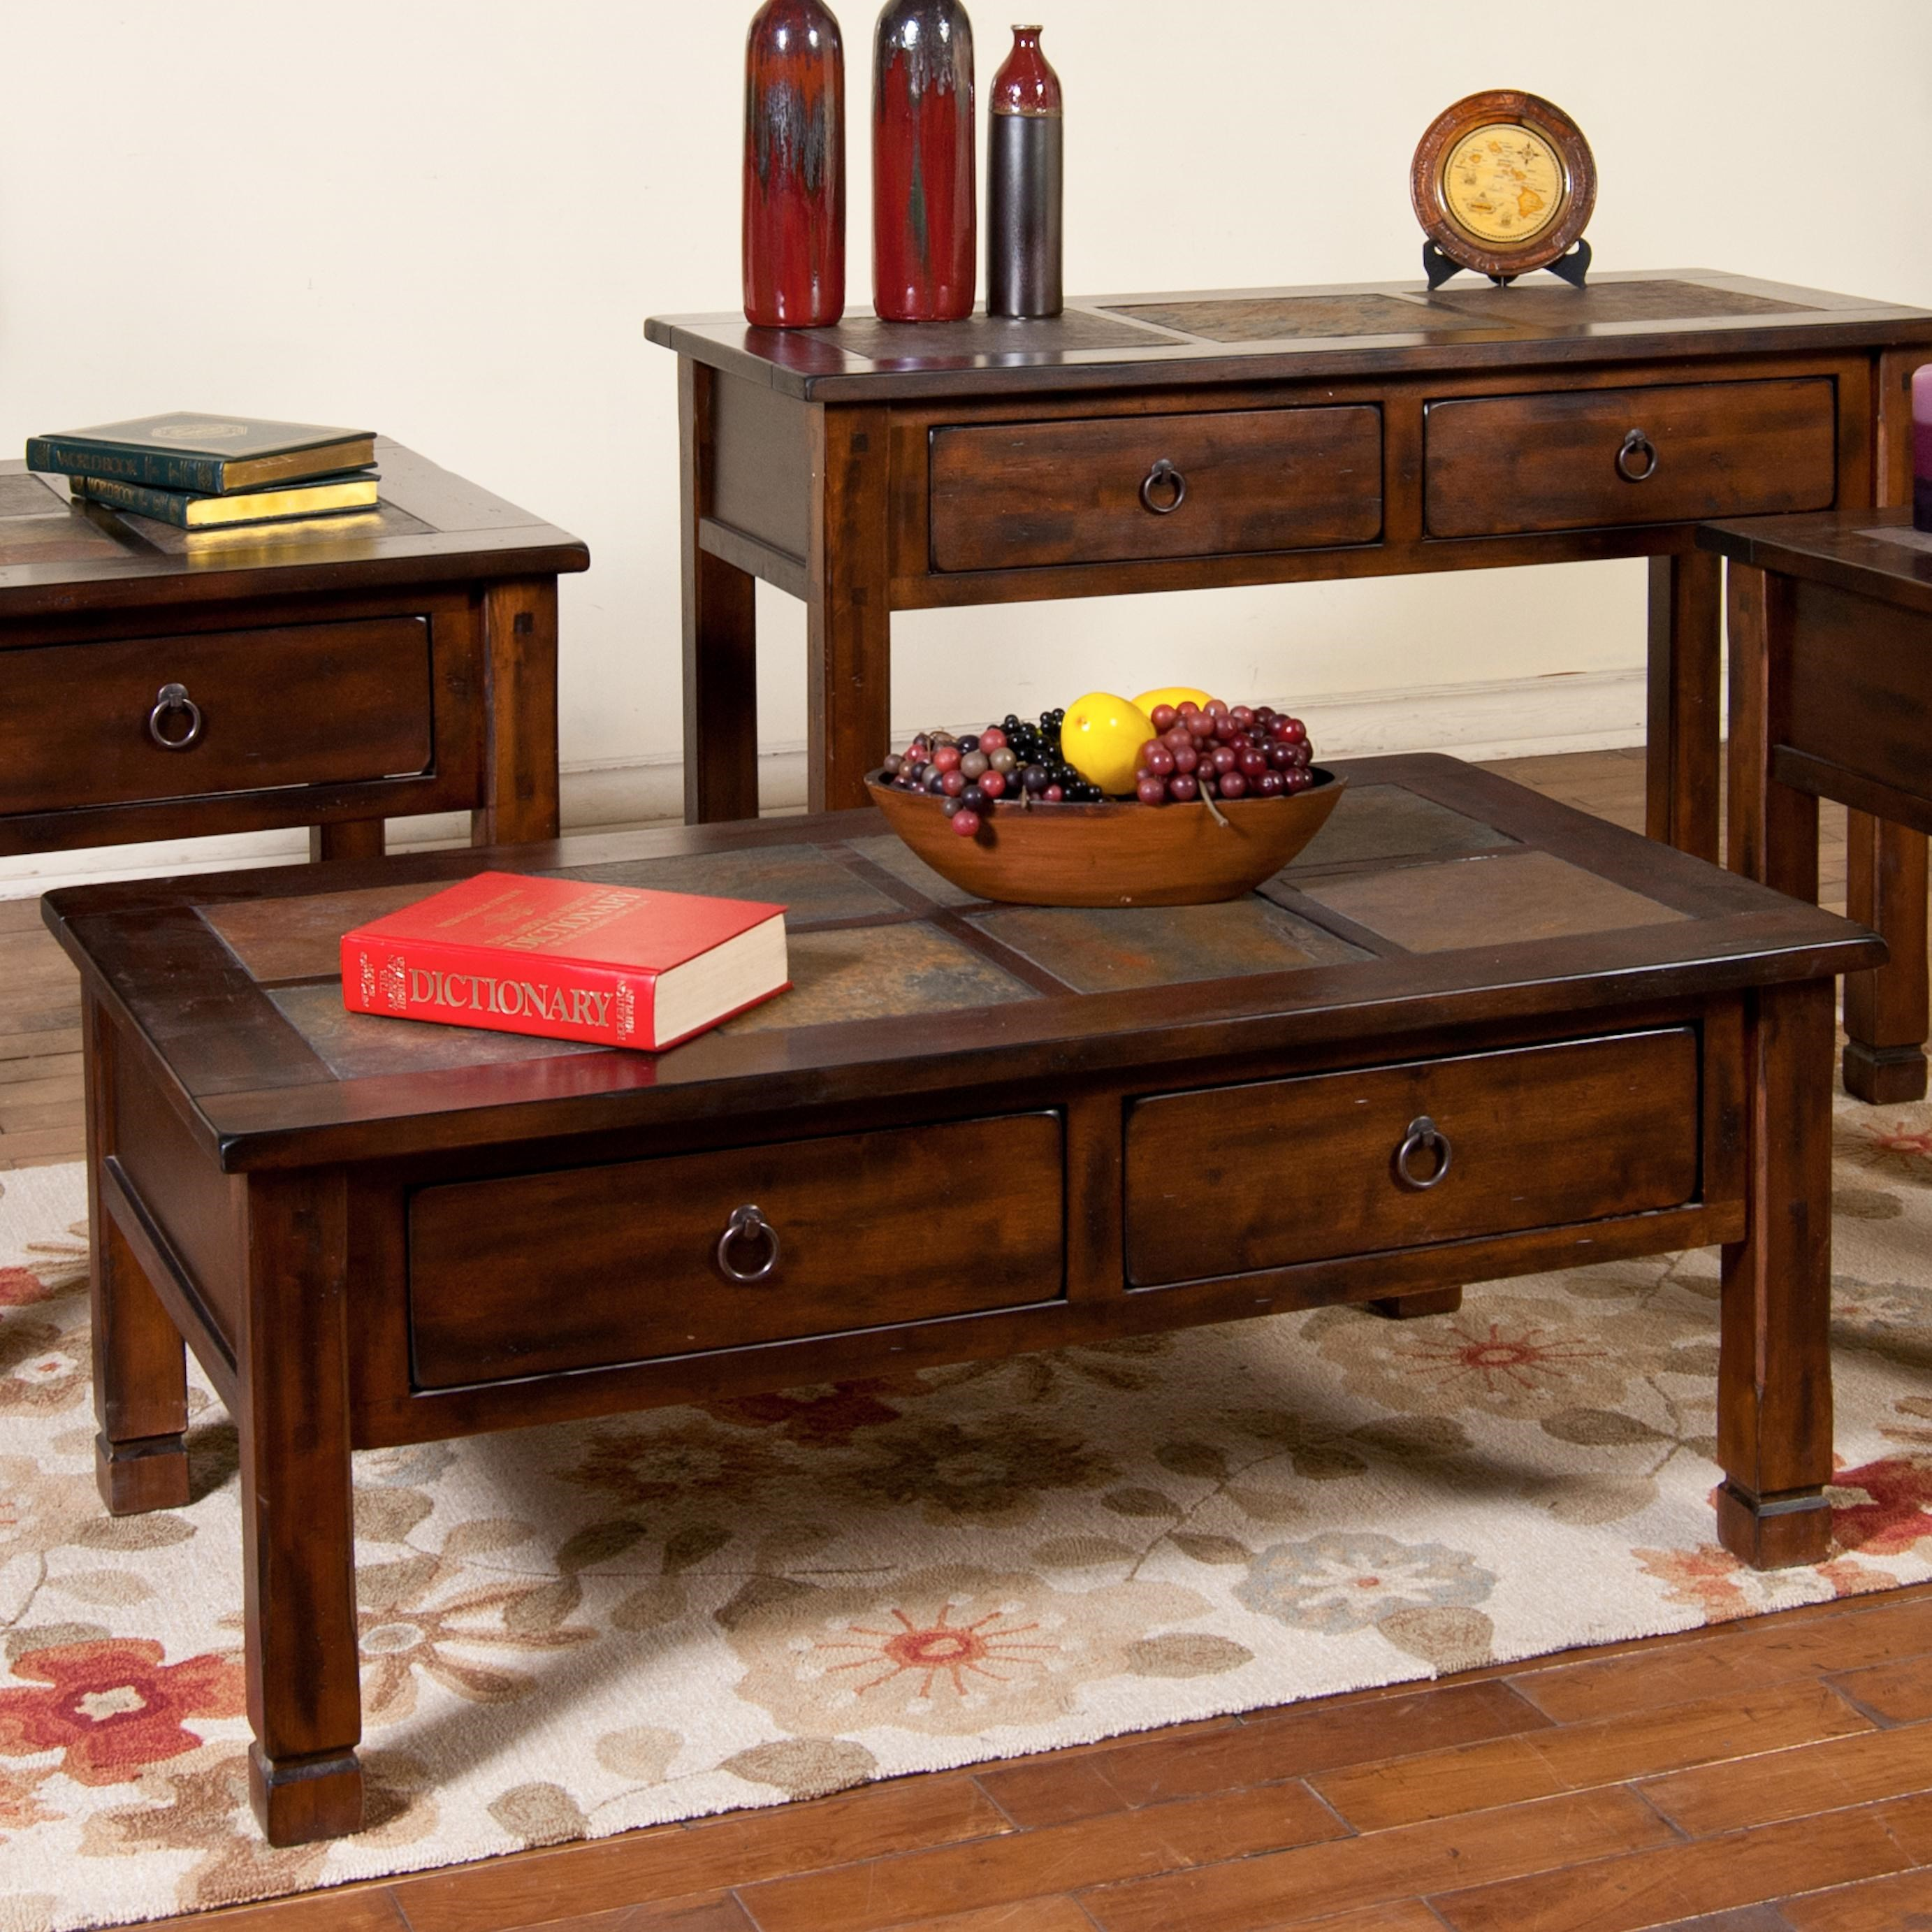 Sunny Designs Santa Fe Coffee Table With Slate Tiles And 2 Drawers